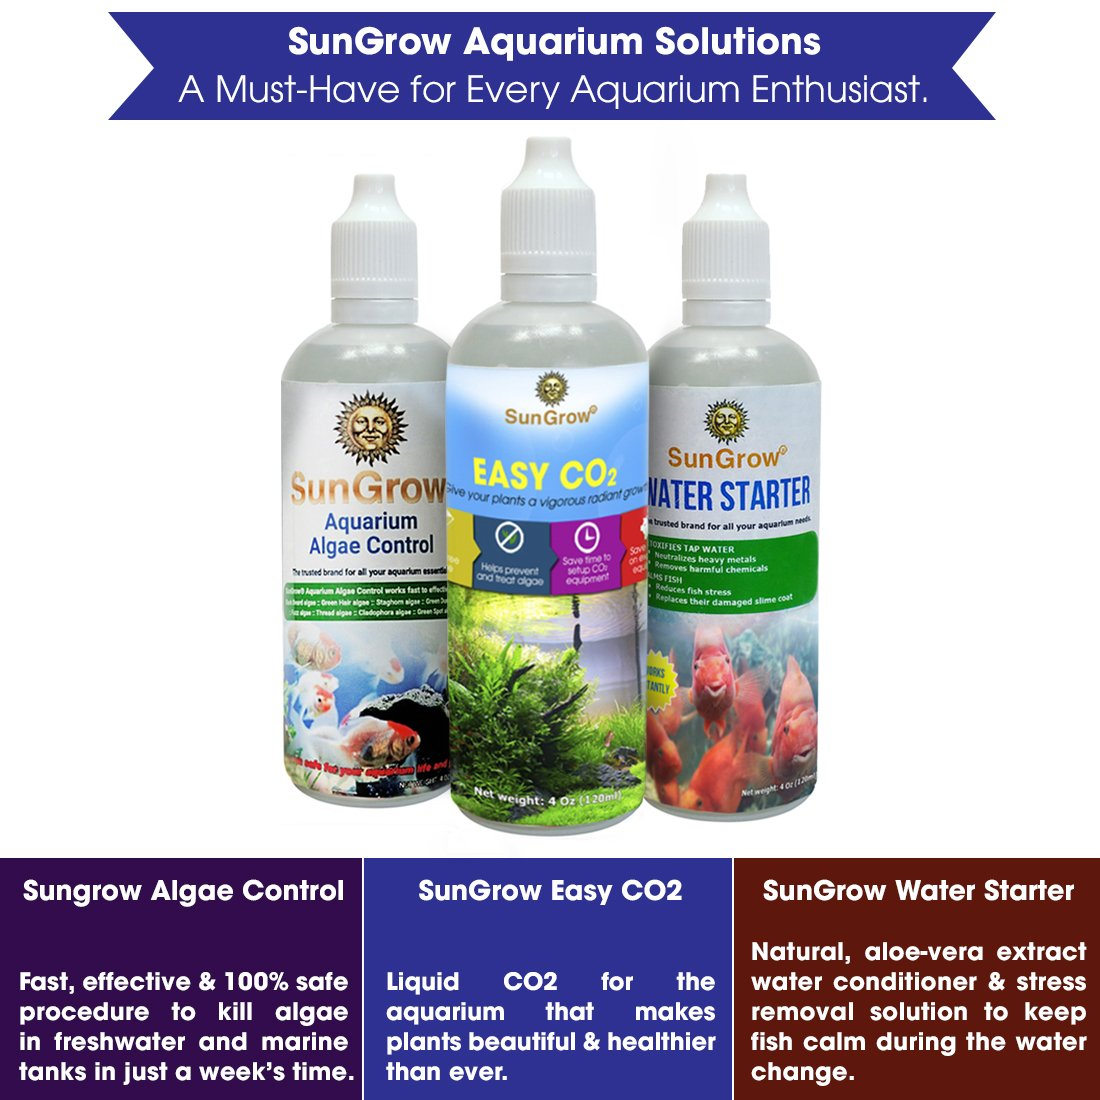 SunGrow Water Starter - Tap Water Conditioner: For Aquarium & Pond: Calms fish during Water Change: Protects fish with Aloe Vera extract